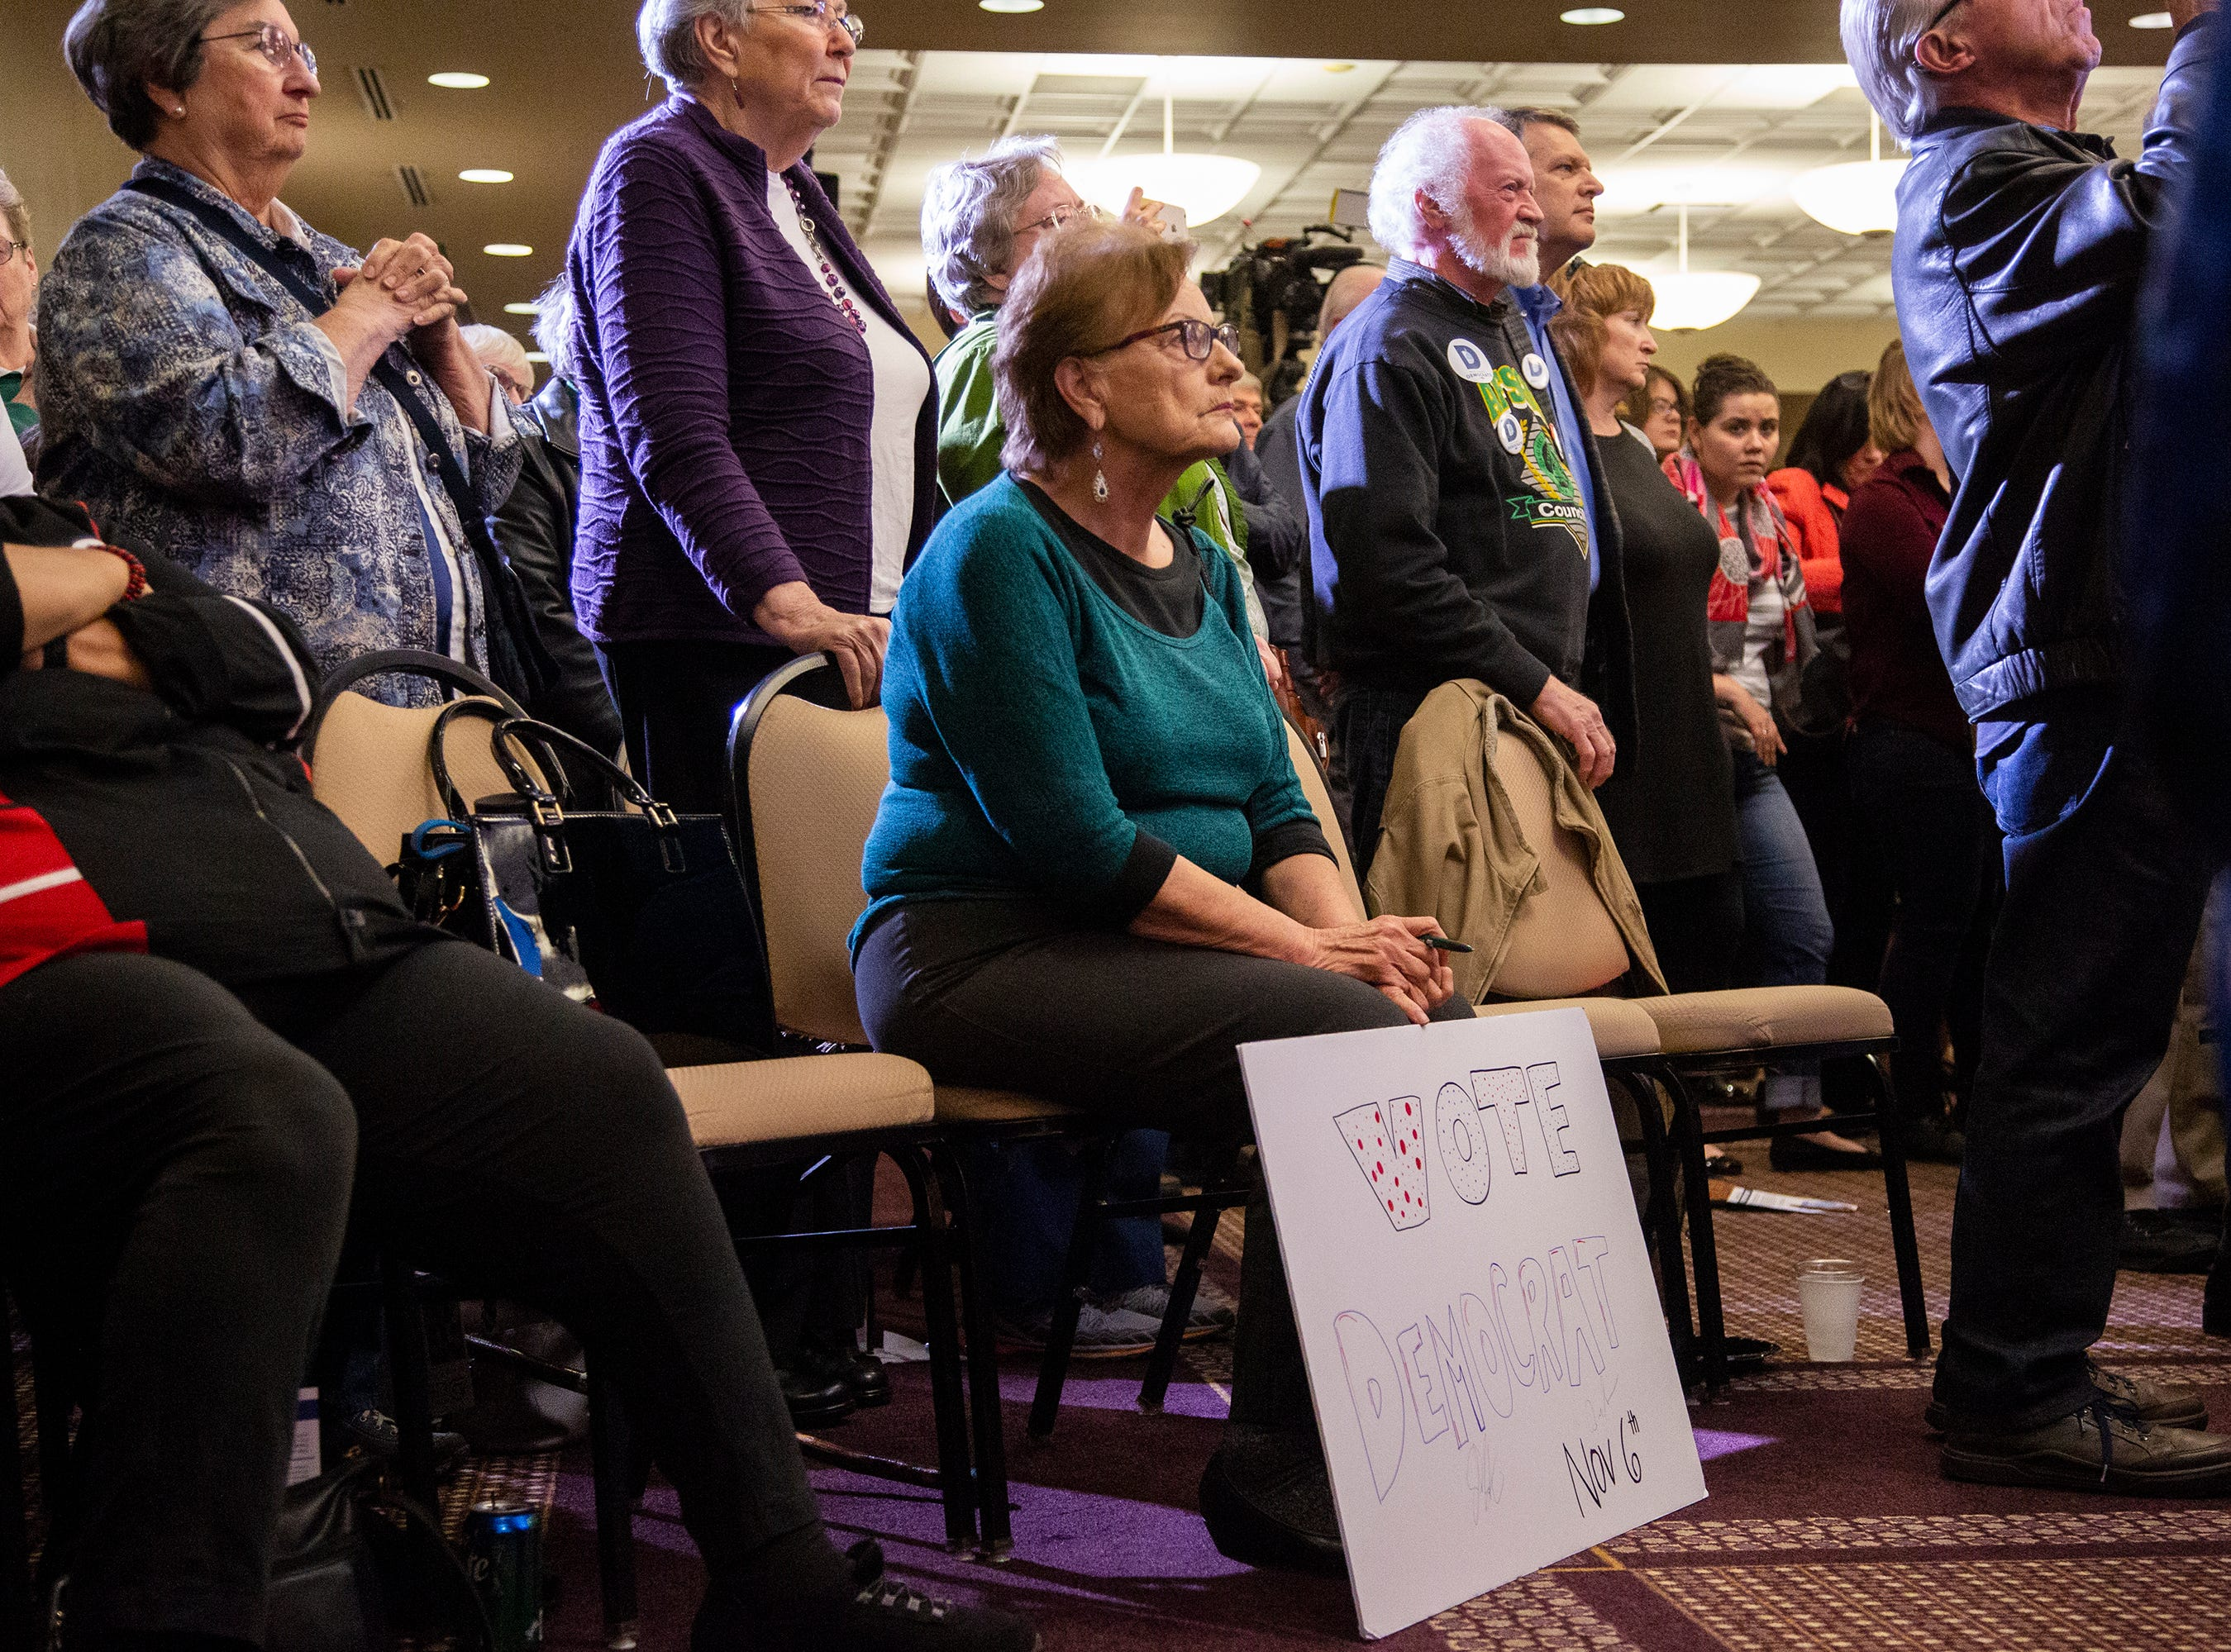 Karon Finn, of Grimes, holds a sign while listening to Kamala Harris, a Democrat Senator from California, during a rally with Polk County Democrats on Monday, Oct. 22, 2018, in Des Moines.